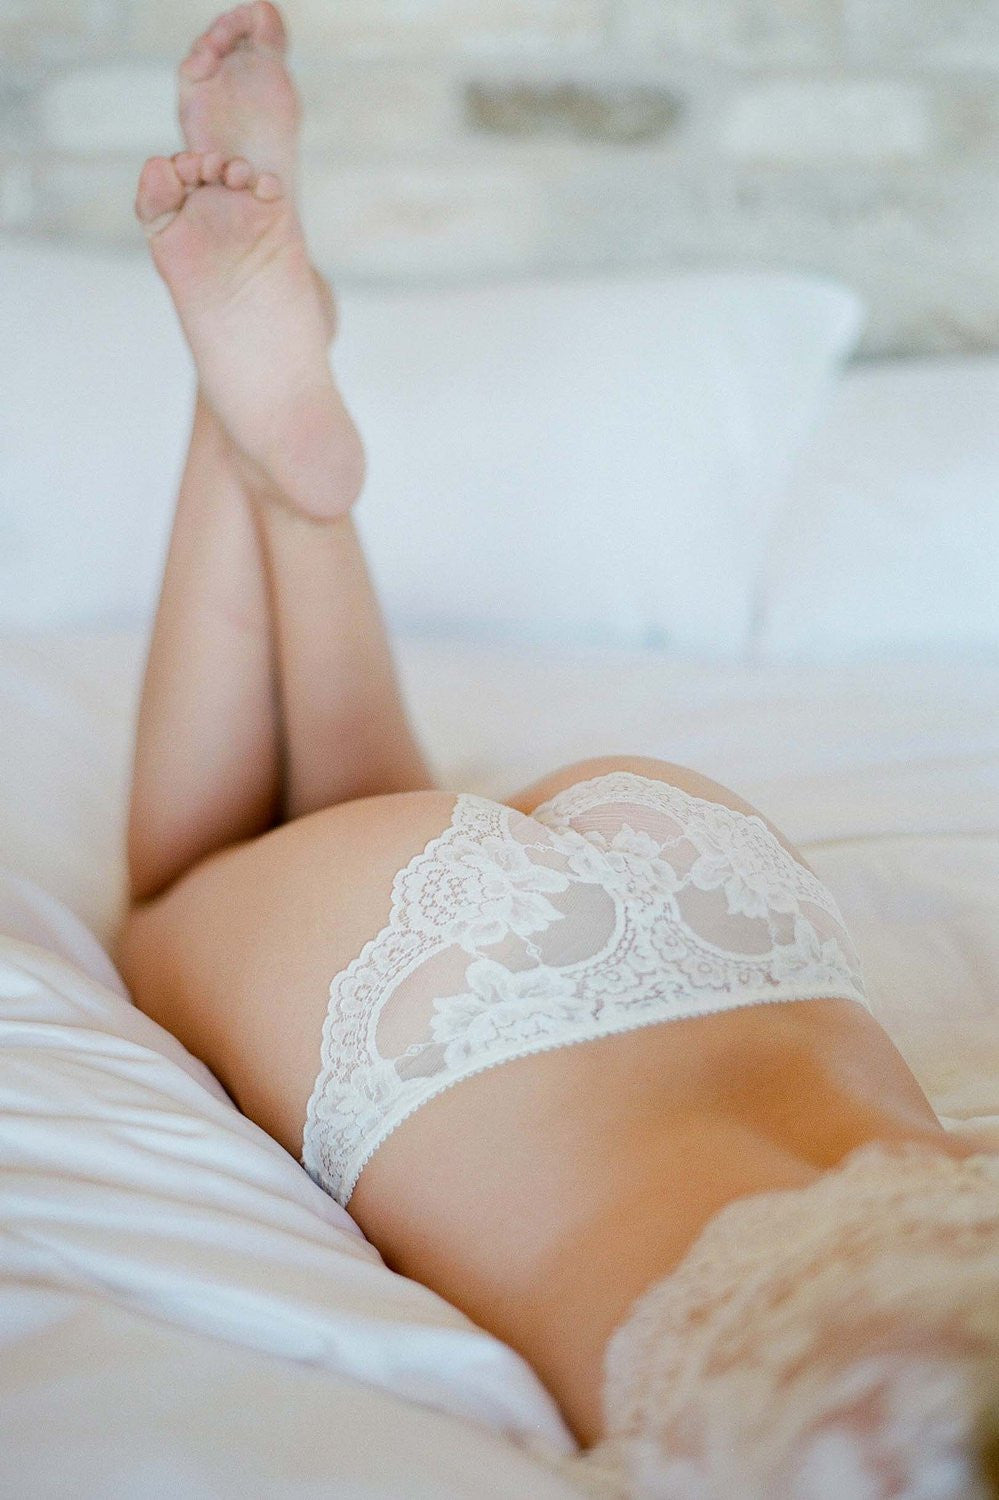 Rosa Scalloped French lace Panties briefs